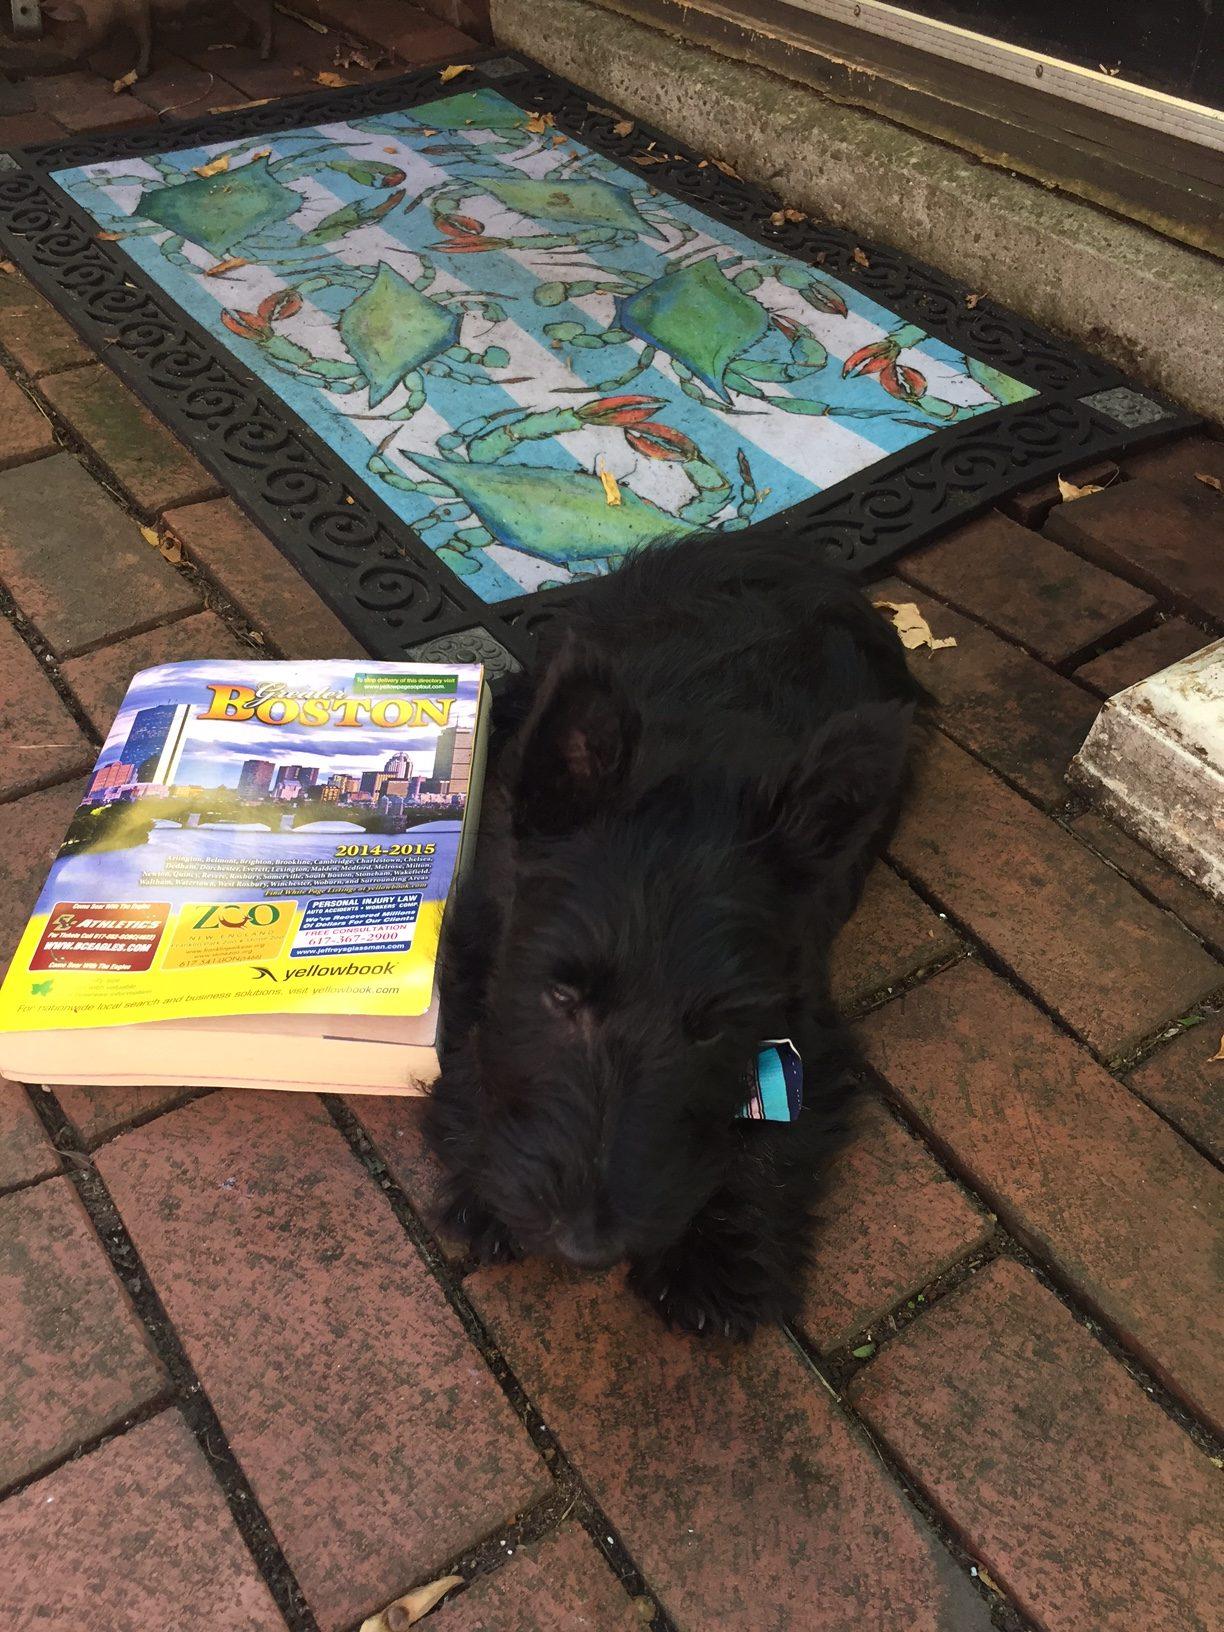 13-week-old Scotty puppy named Charlie